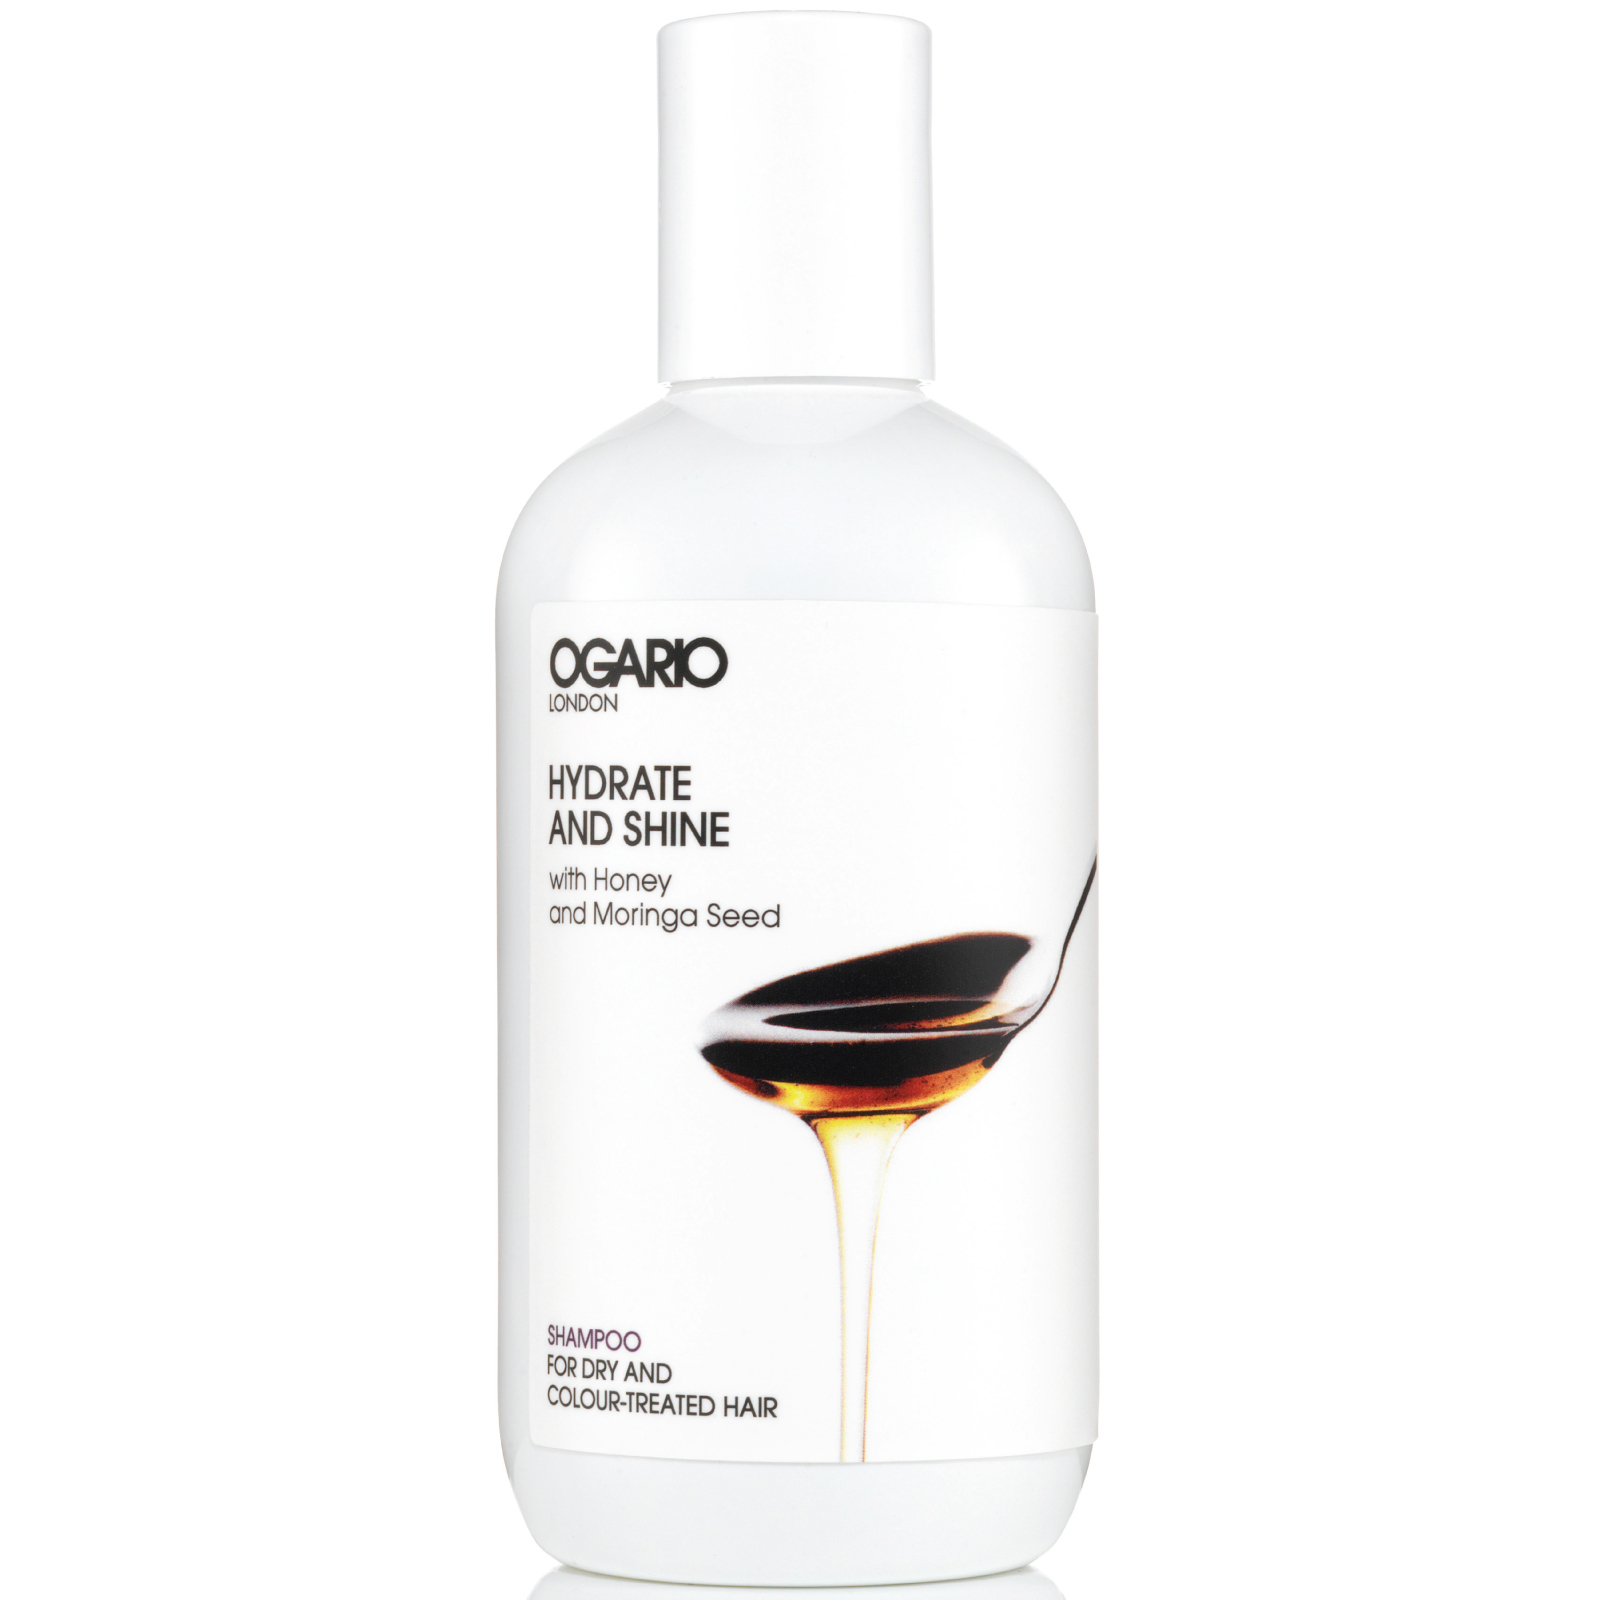 Hydrate and Shine Shampoo; Prep Dry Hair for Styling